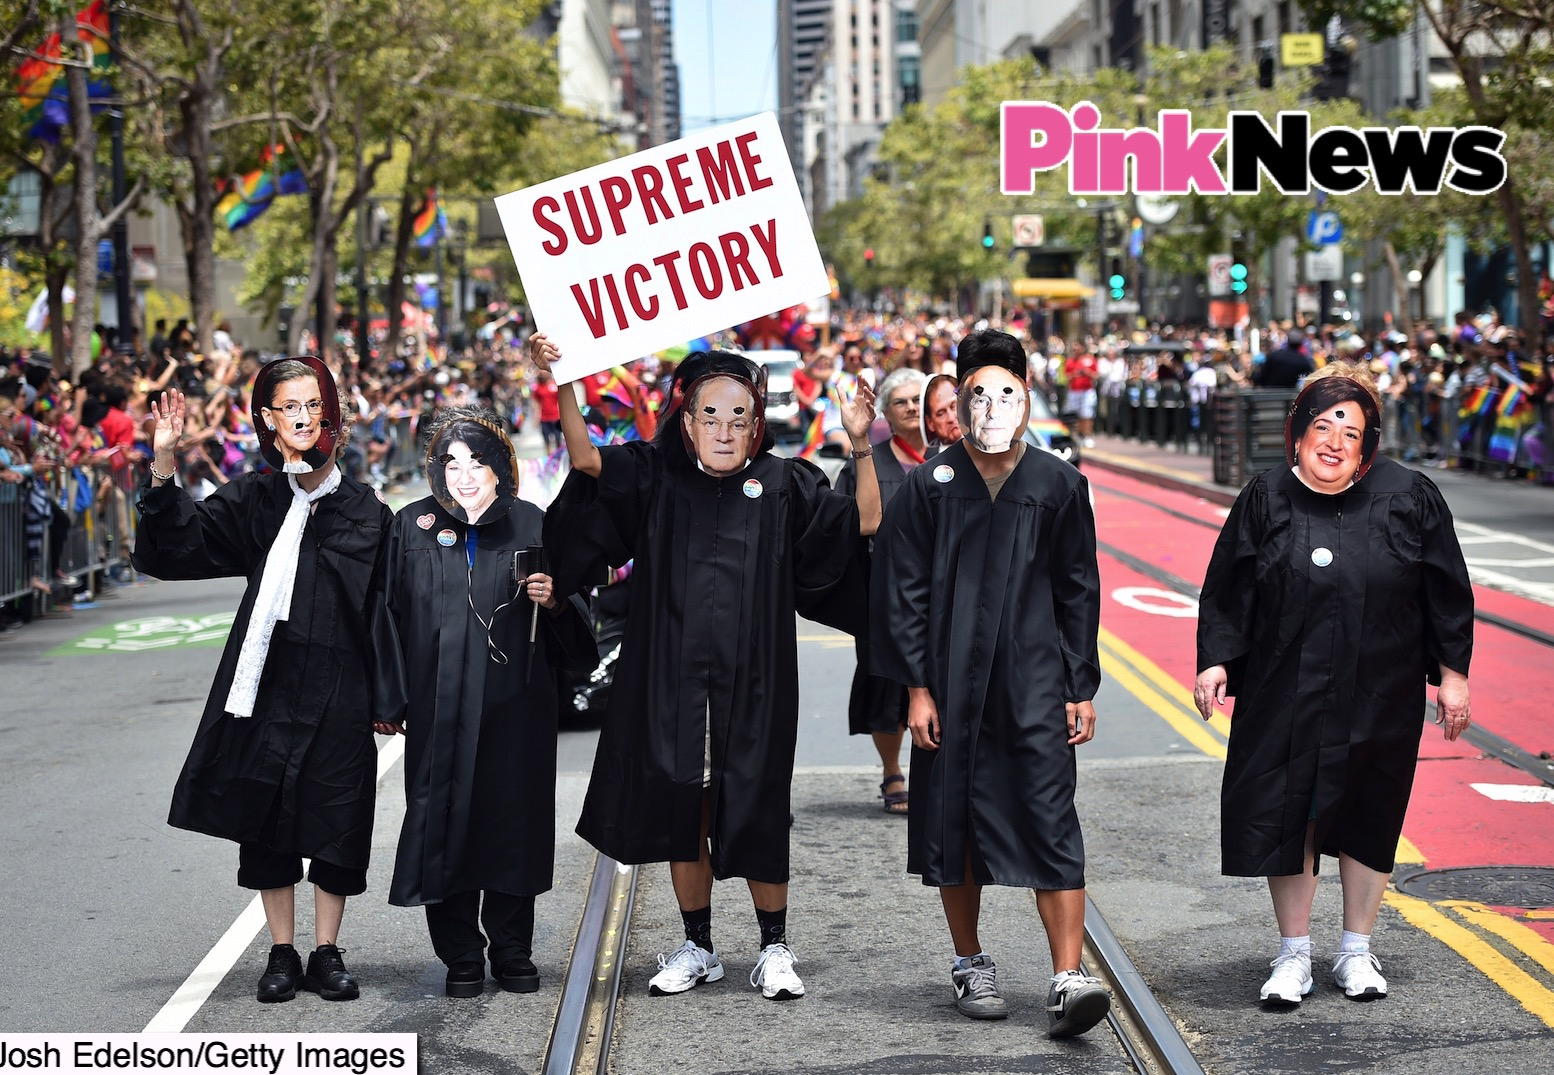 People dressed as United States Supreme Court Justices march along Market Street during the annual Gay Pride parade in San Francisco, California on June 28, 2015, two days after  the US Supreme Court's landmark ruling legalizing same-sex marriage nationwide.    AFP PHOTO / JOSH EDELSON        (Photo credit should read Josh Edelson/AFP/Getty Images)